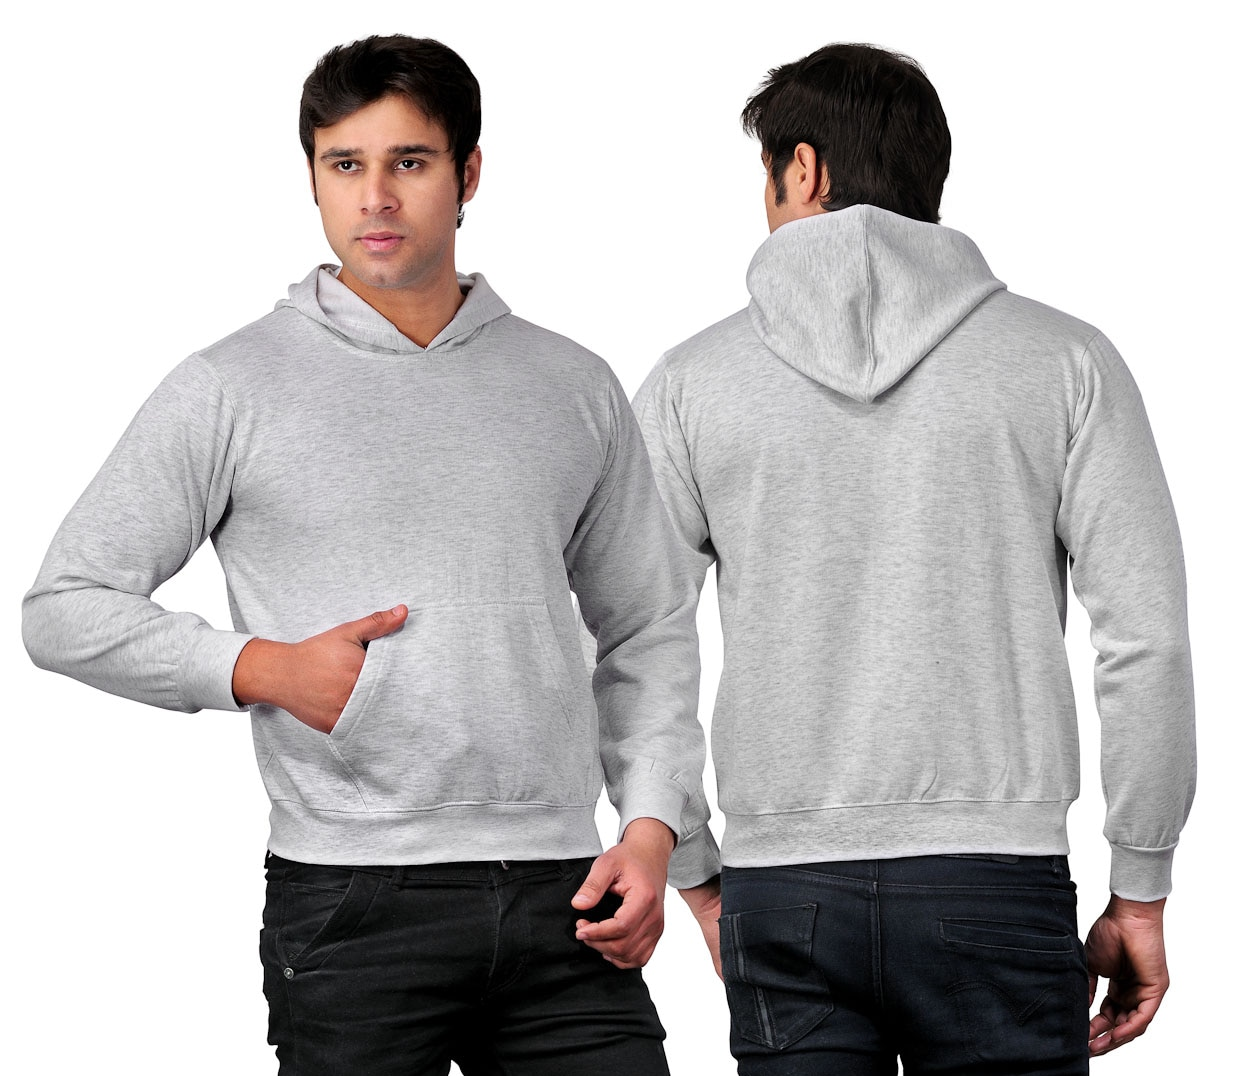 Hoodie's is a type of sweatshirt with a hood or a cap attached with it, at the backside, We Present Fashionable Hoodies In Most Available Color's i.e Black, Grey, Charcoal Grey,Navy Blue Color's  For More Details Contact Us And Our Office Located In HSR Layout Bangalore